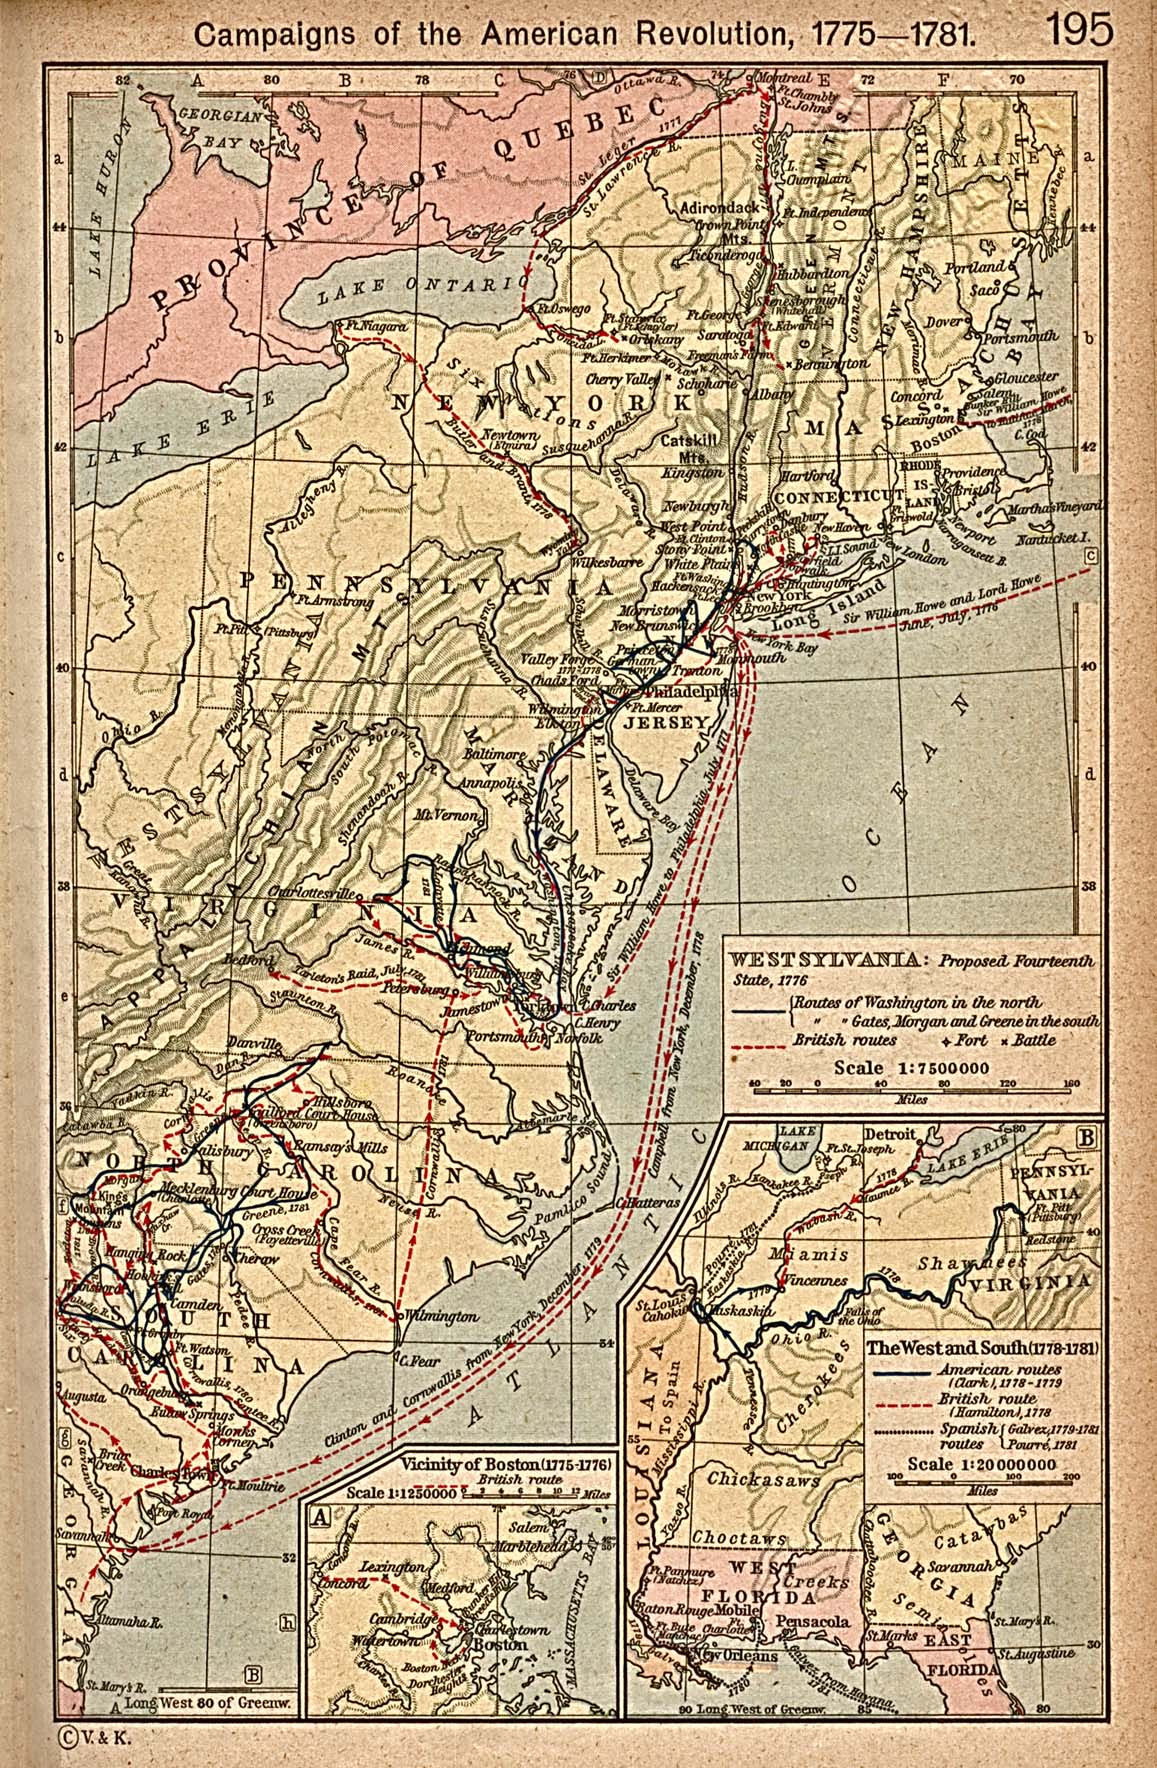 Revolutionary War Map Of New York.United States Historical Maps Perry Castaneda Map Collection Ut